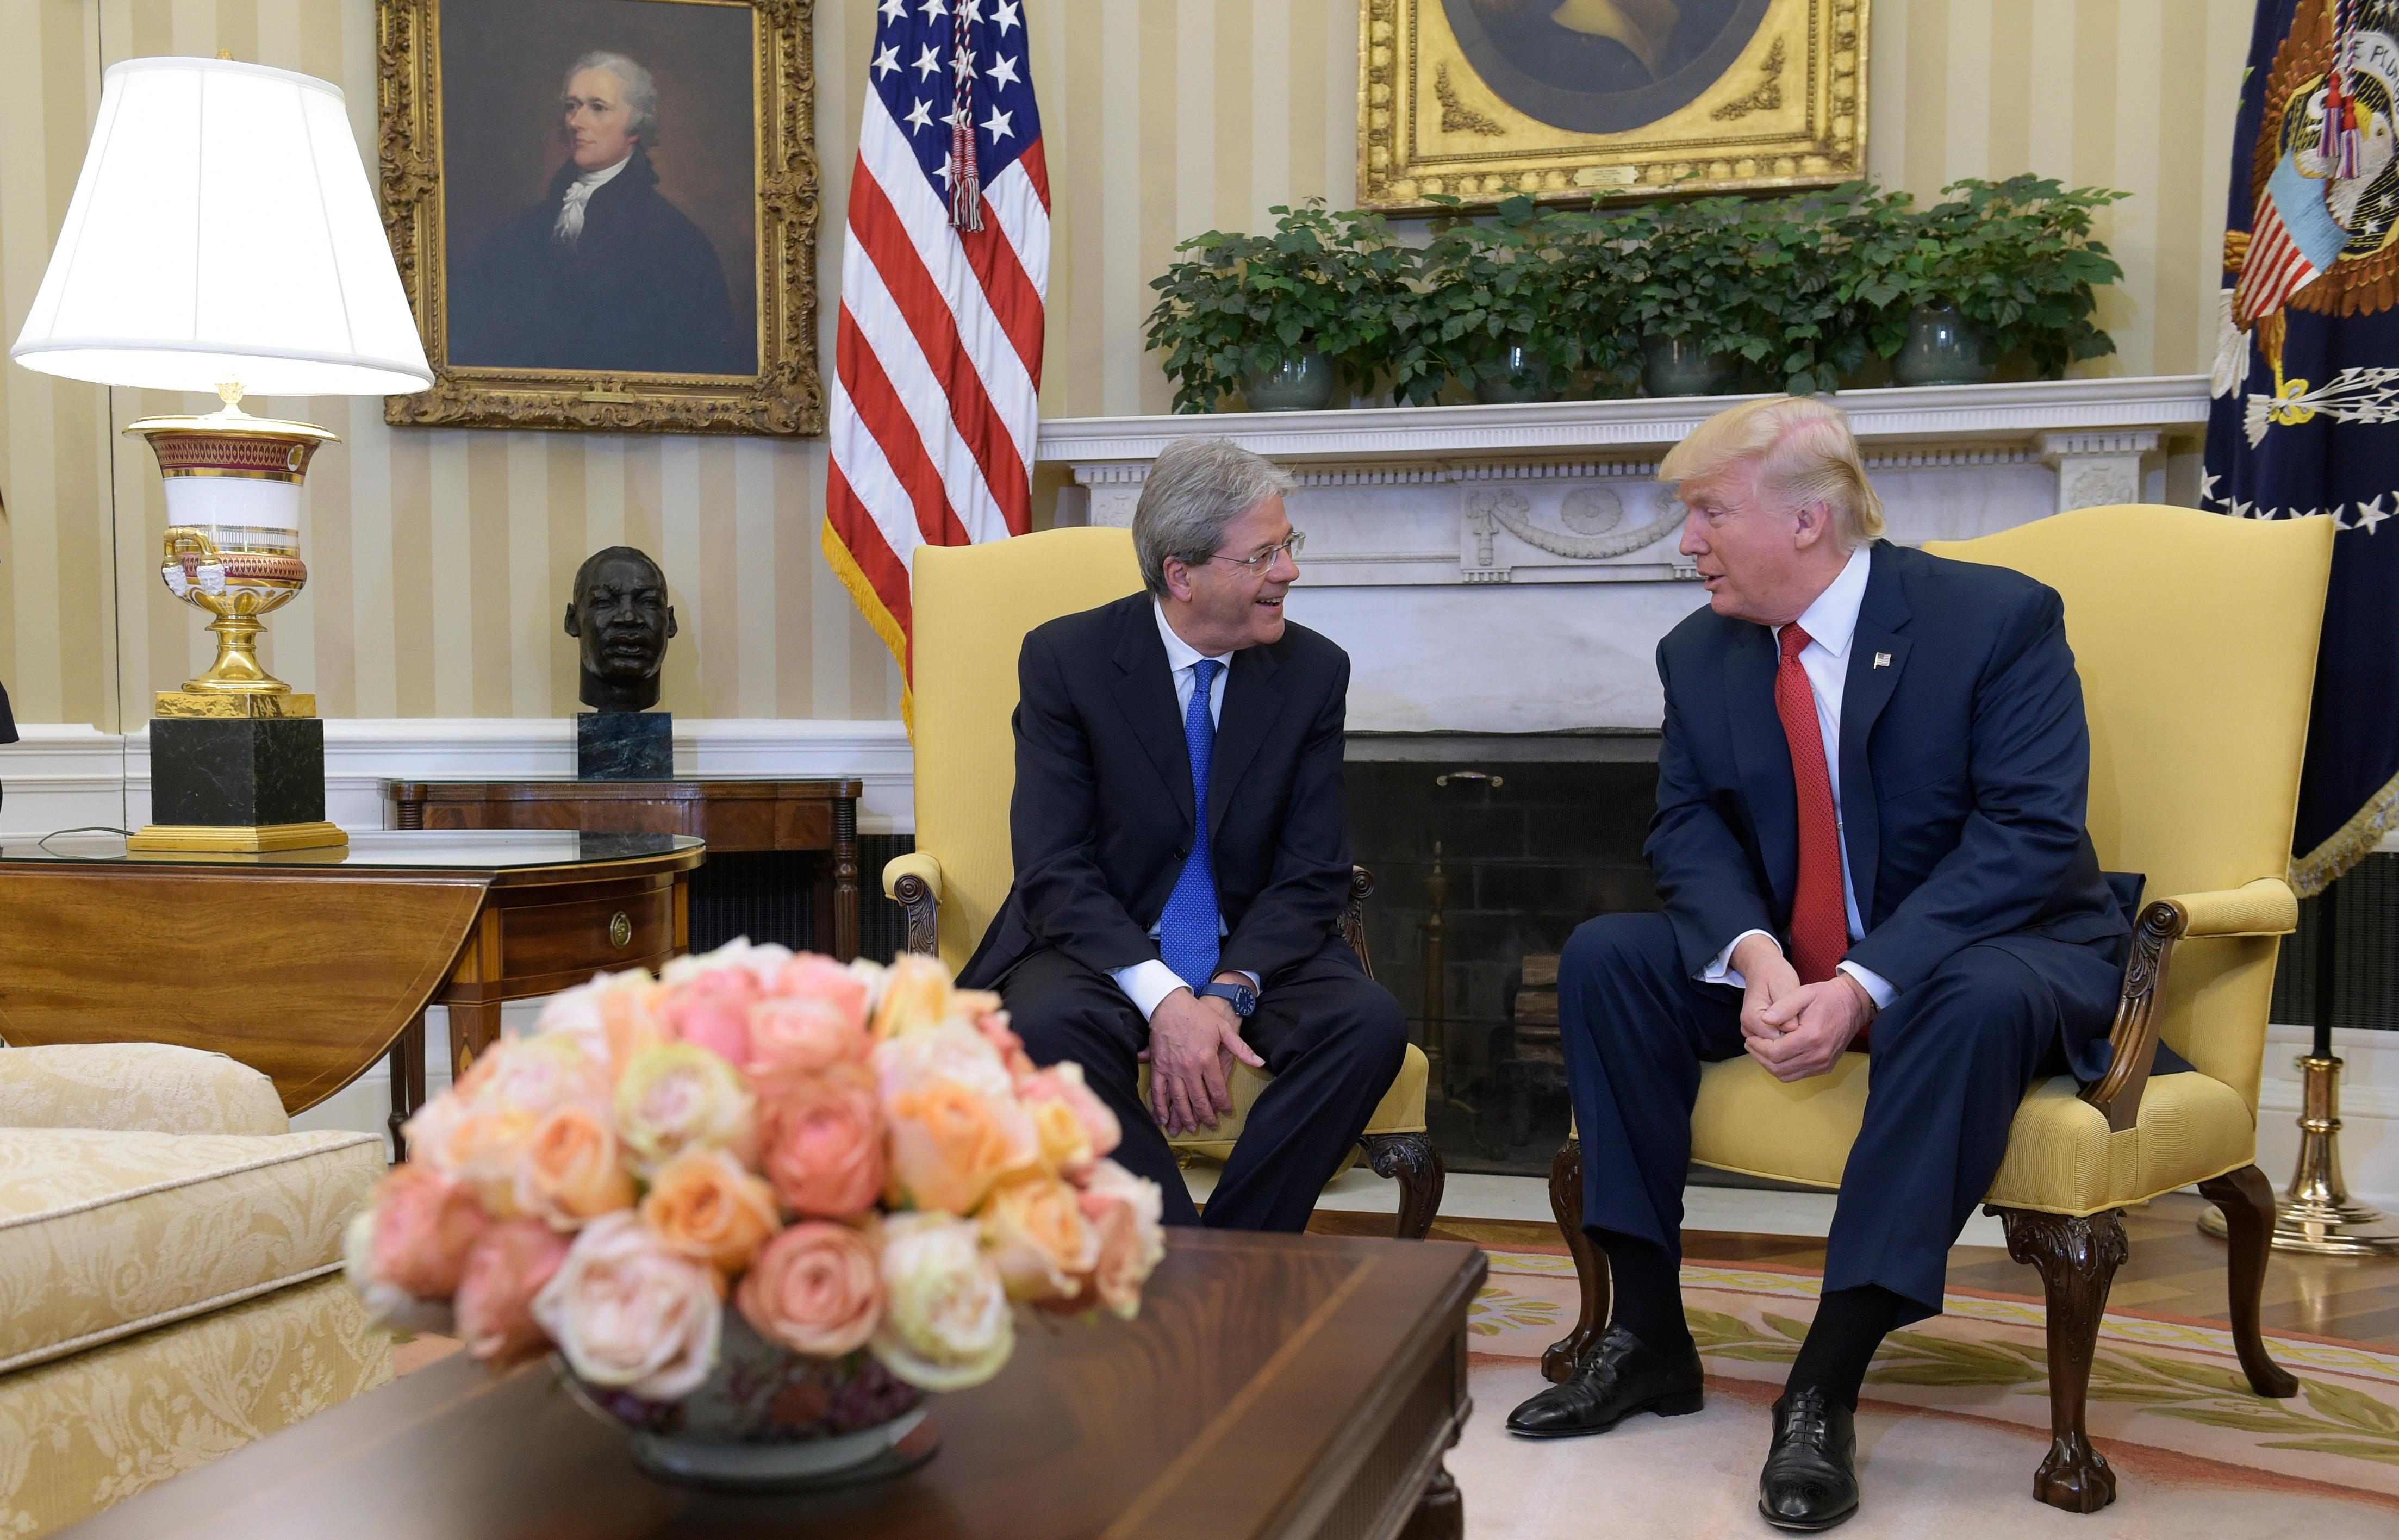 President Donald Trump meets with Italian Prime Minister Paolo Gentiloni in the Oval Office of the White House in Washington, Thursday, April 20, 2017. (AP Photo/Susan Walsh)